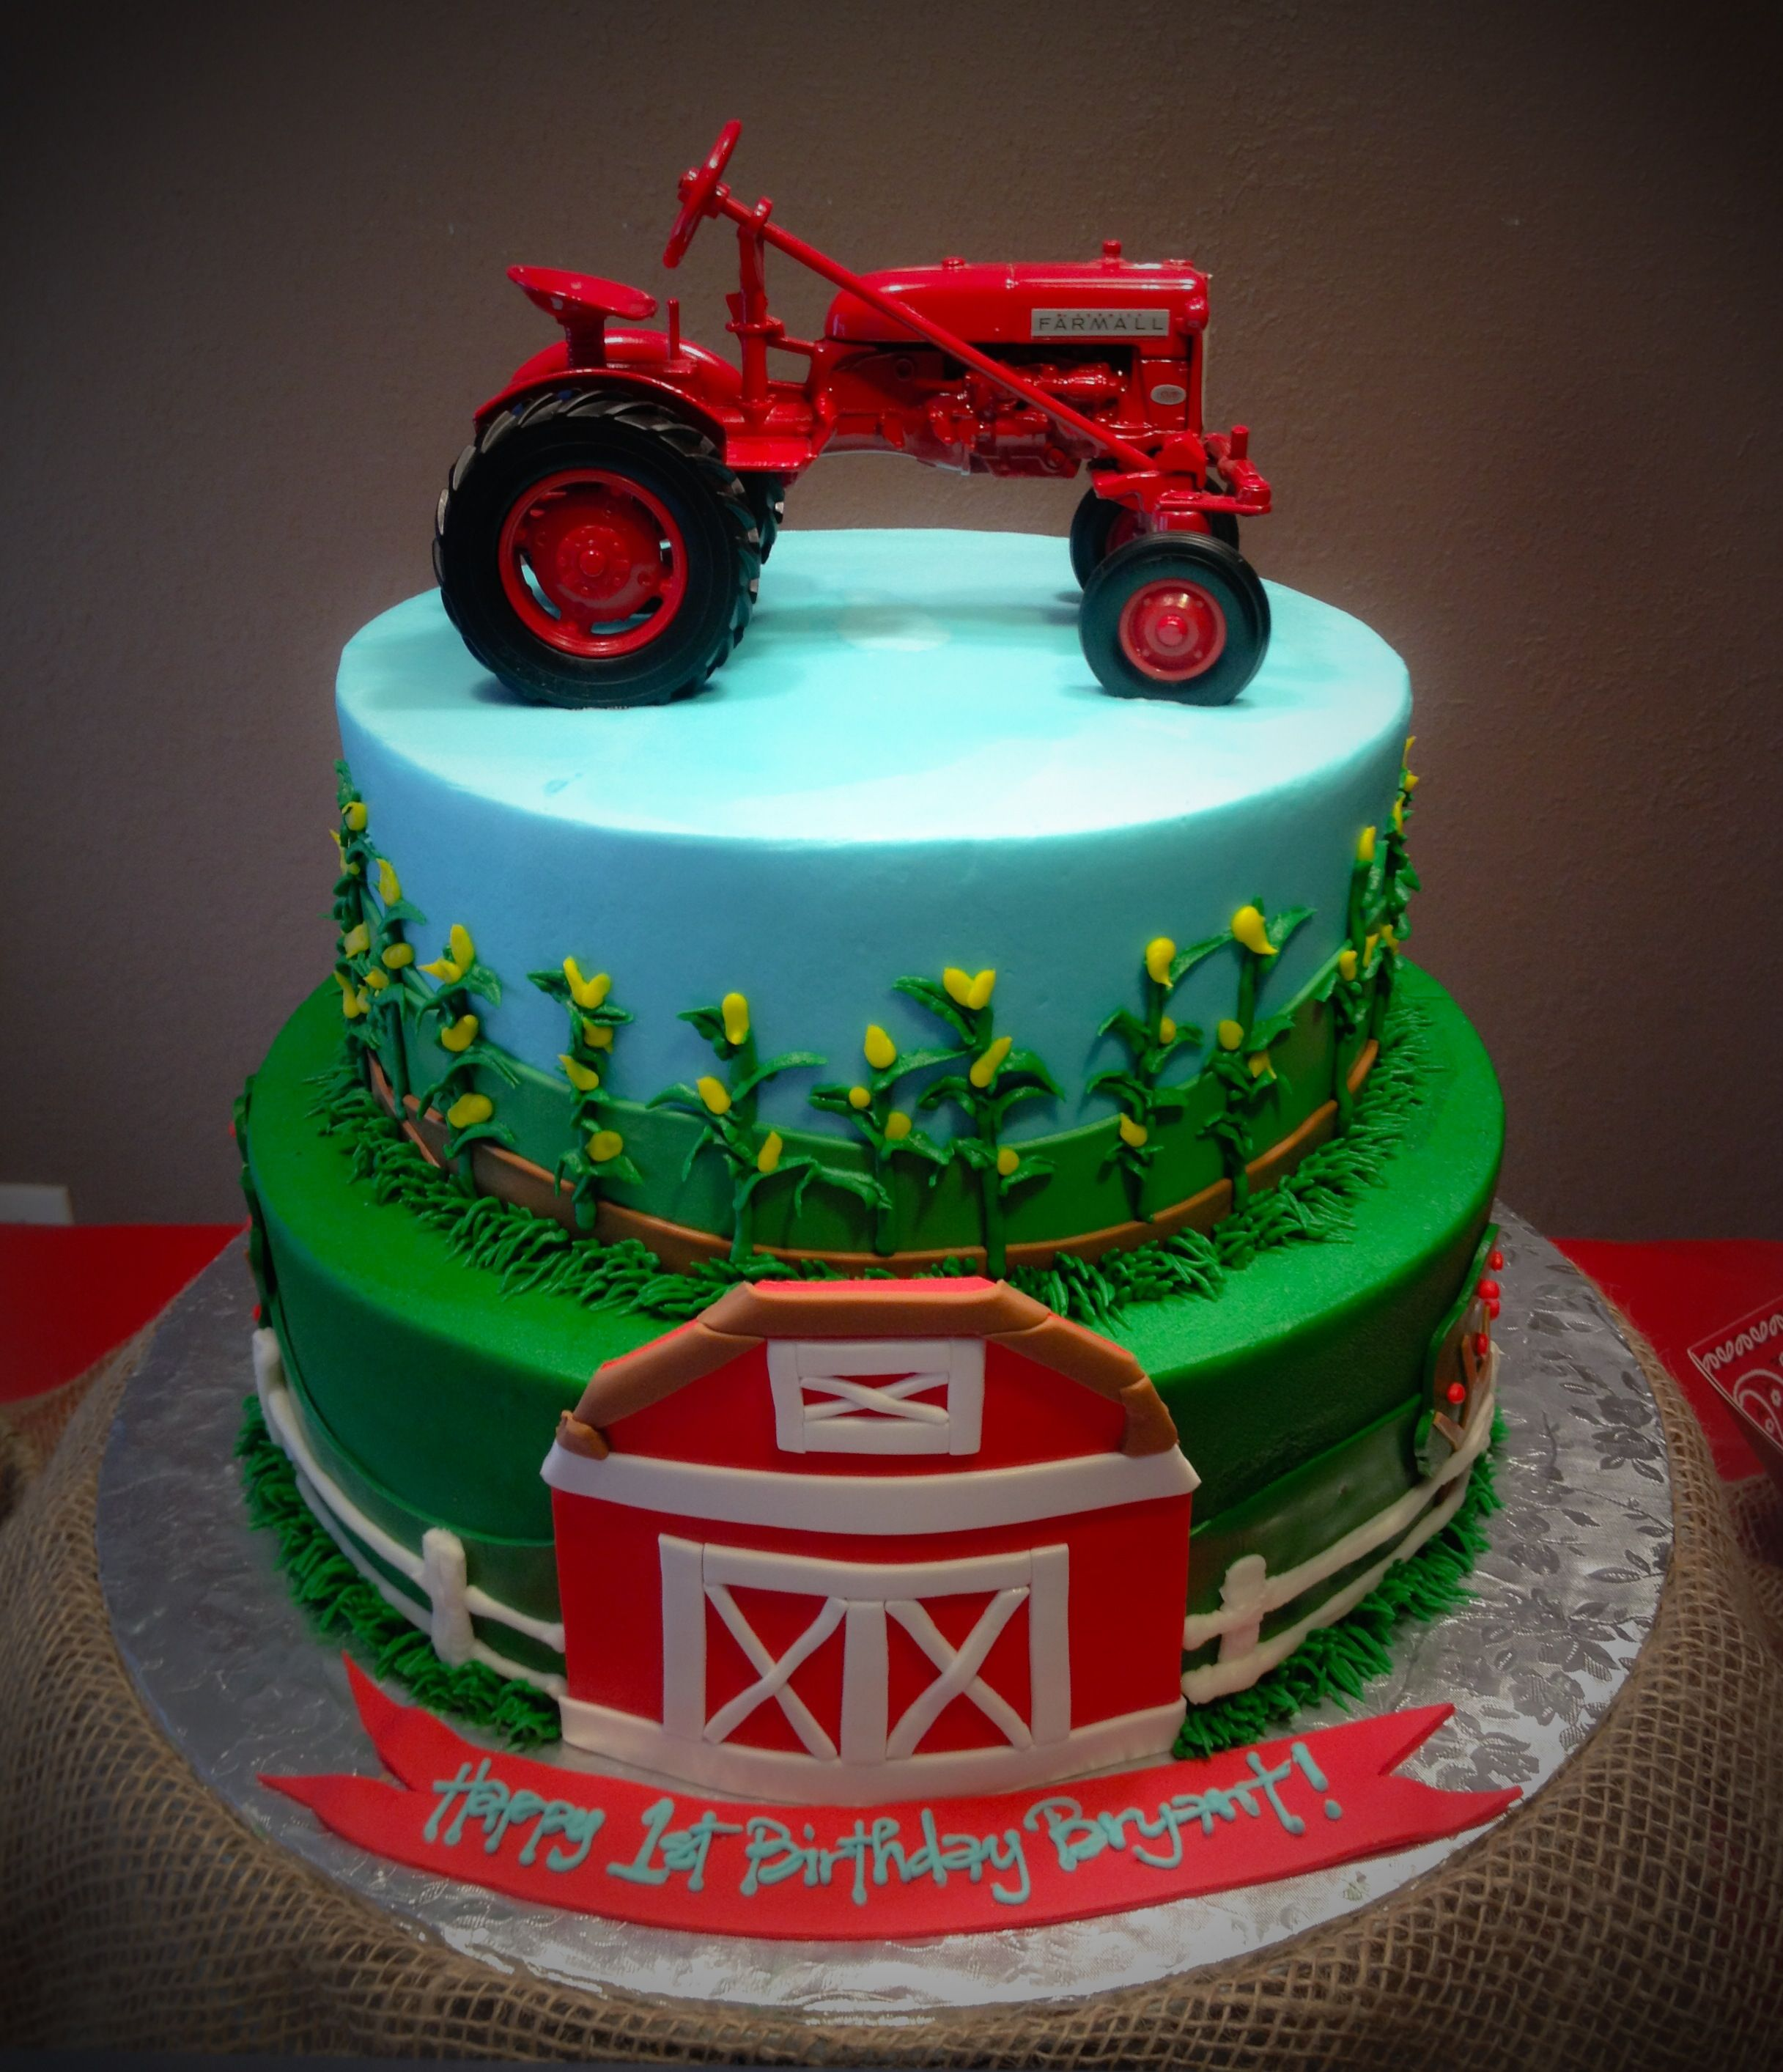 Farmall Tractor Cake By Blue Cake Co Little Rock Ar